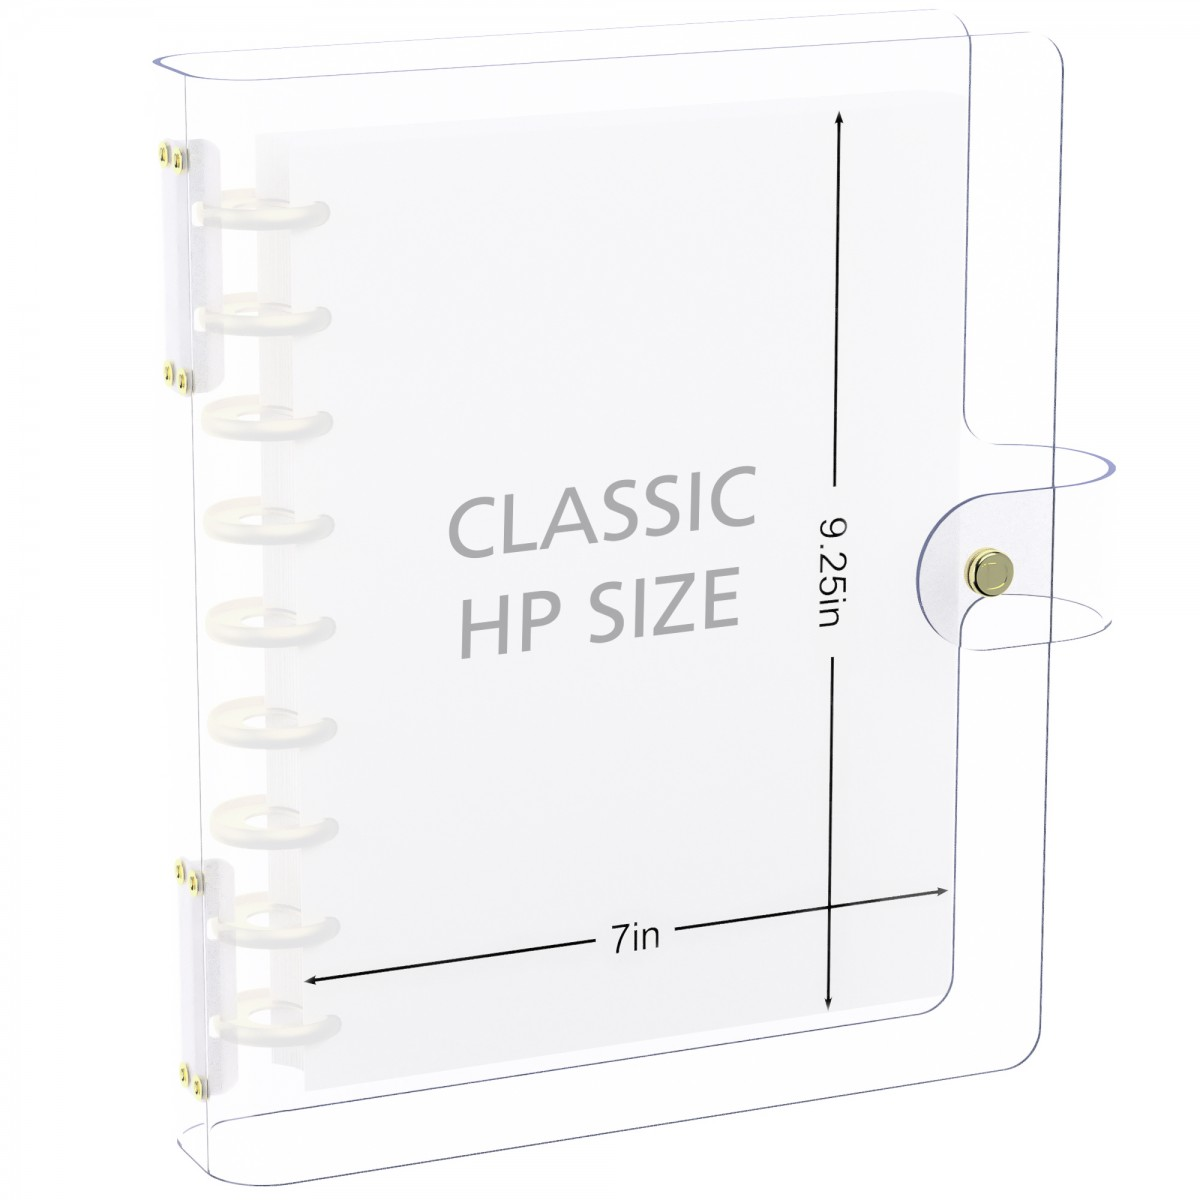 DISCAGENDA CLARITY CLEAR SEE THROUGH PVC PLANNER COVER - DISCBOUND, CLASSIC HP SIZE